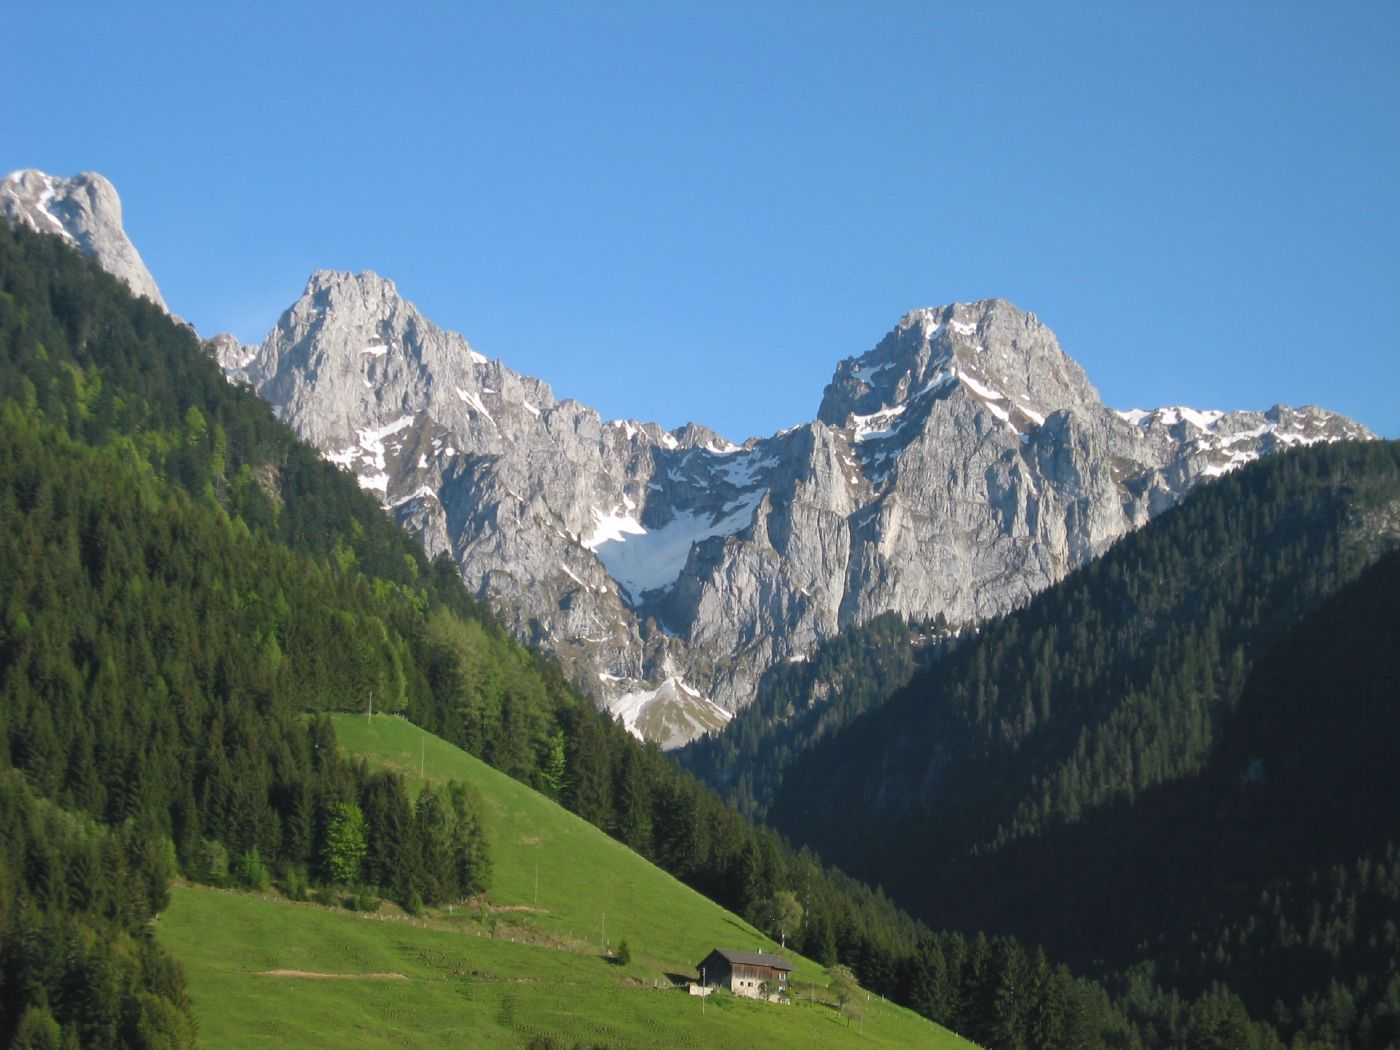 mountain view of the Swiss Alps